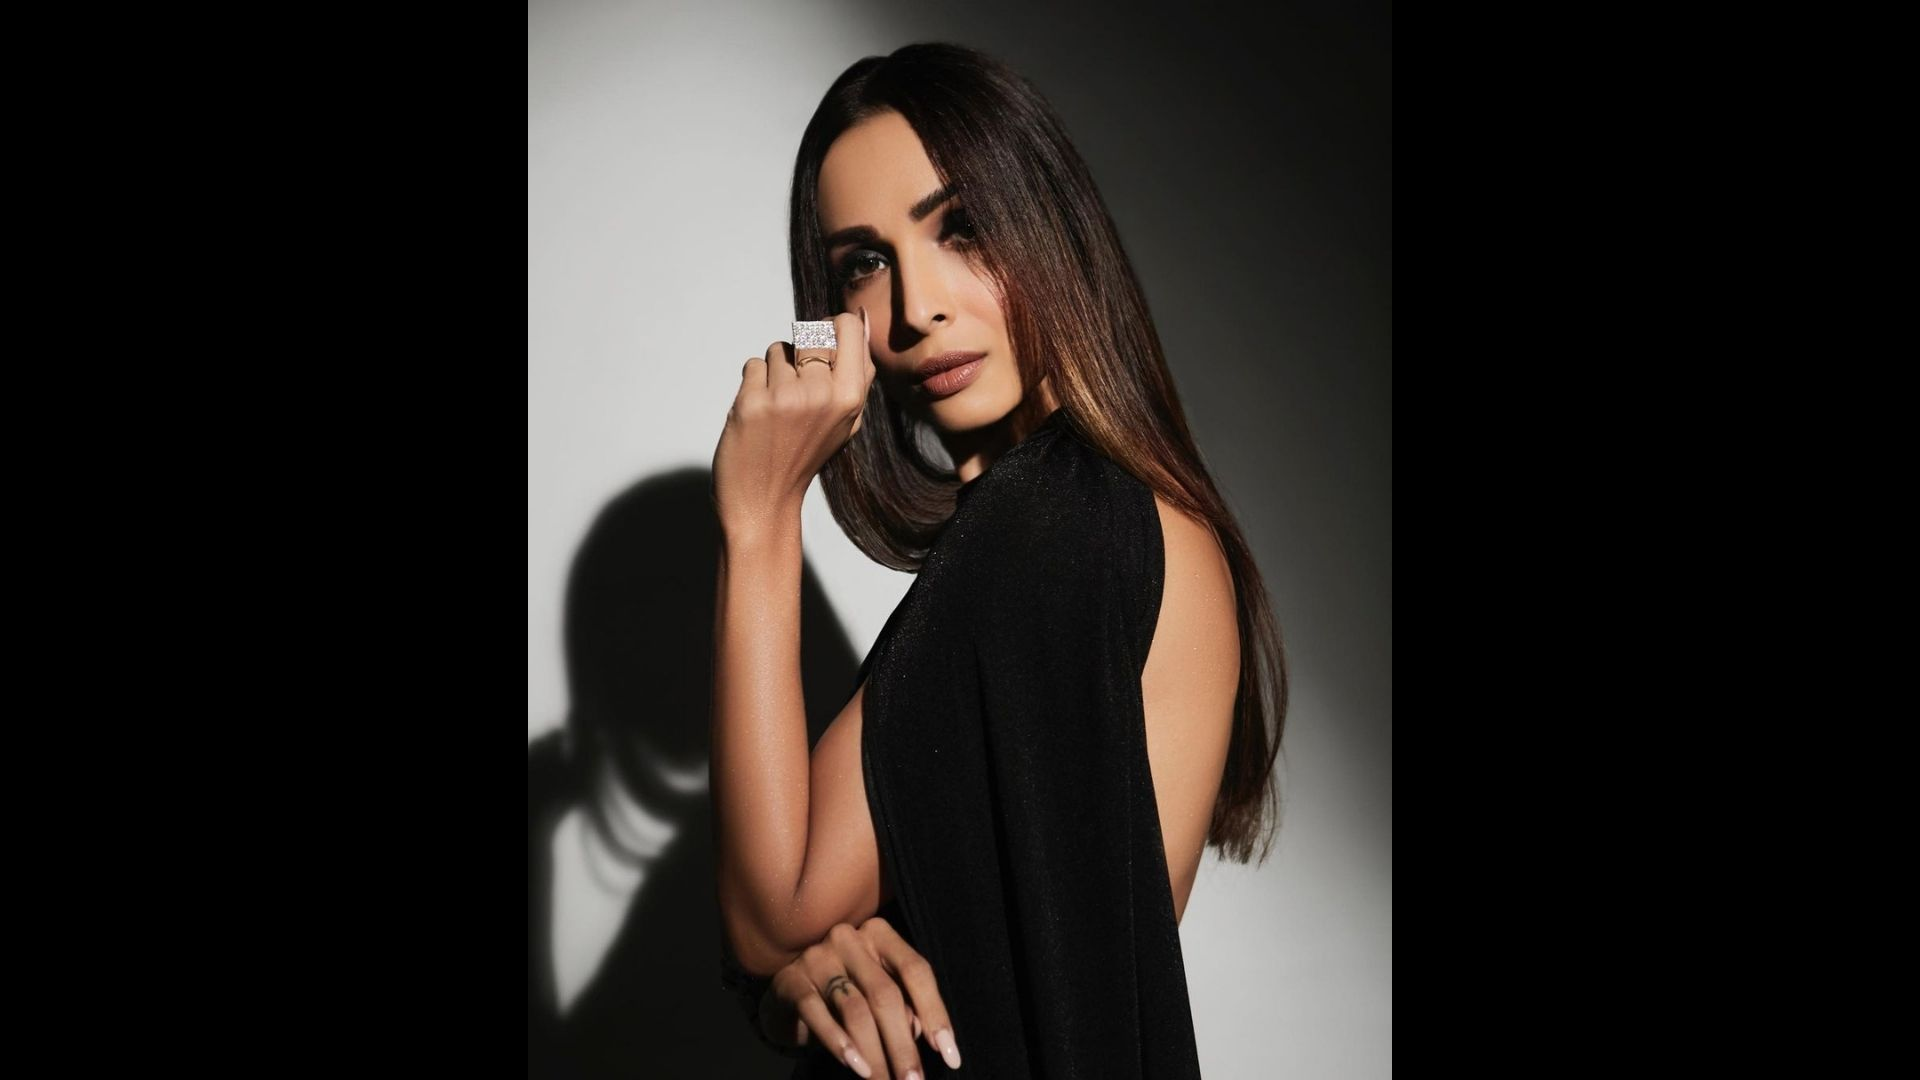 India's Best Dancer 2: Malaika Arora Shares The Moment When A Fan Touched Her Cheeks And Said That She Felt A Bit Scared